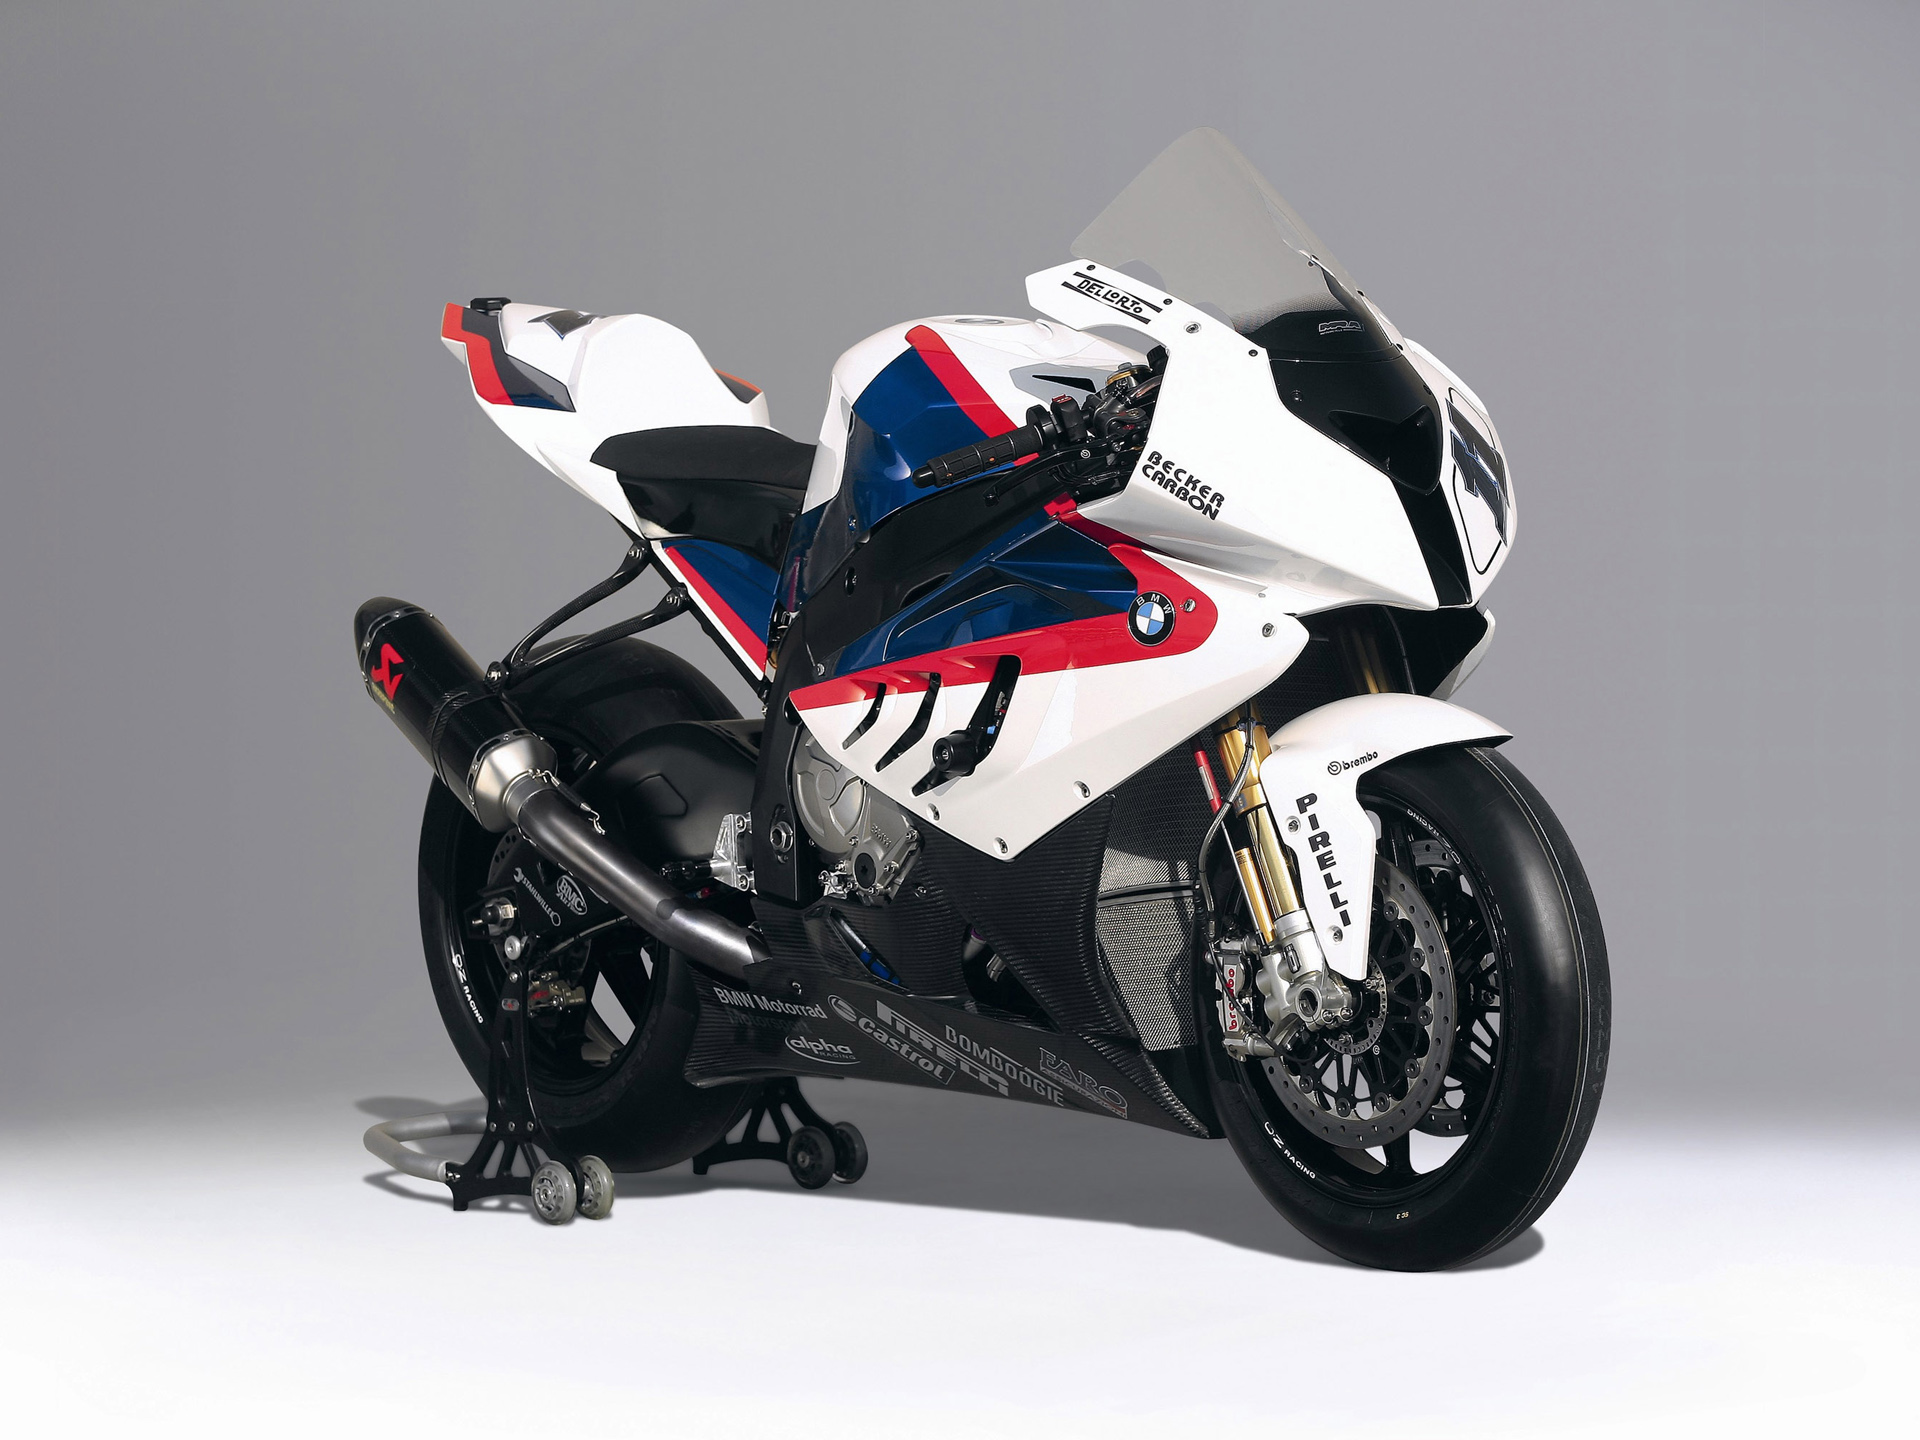 BMW S1000RR SBK photos - PhotoGallery with 5 pics ...